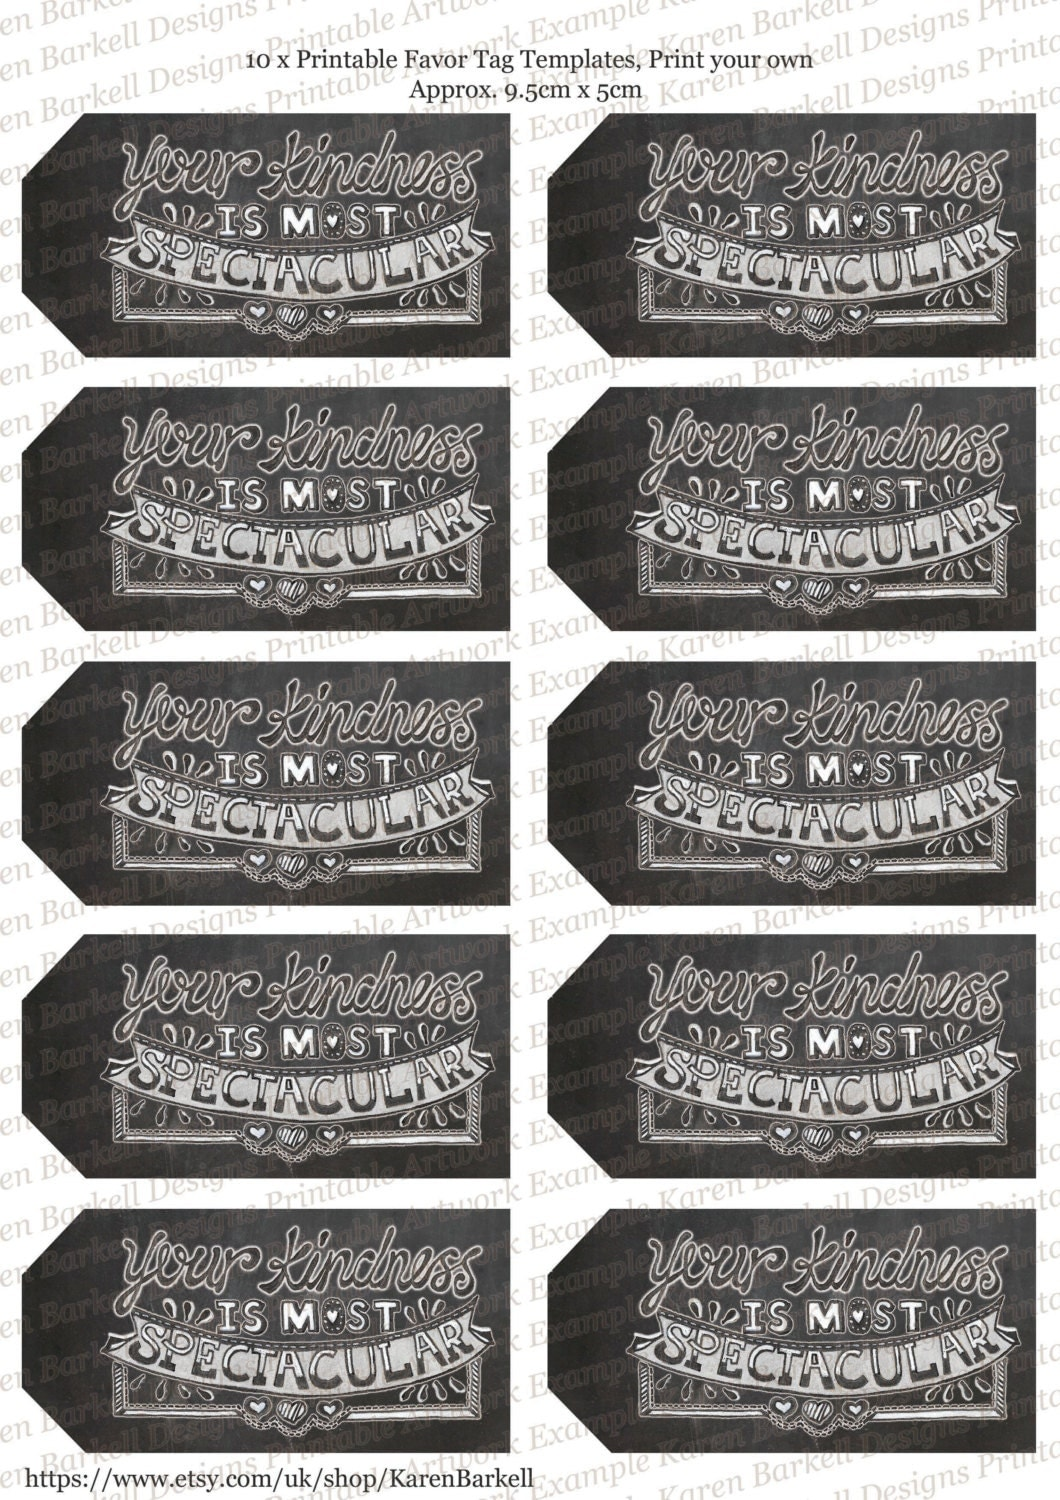 Print Your Own Wedding Gift Tags : Chalkboard Wedding Favor Tags print your own